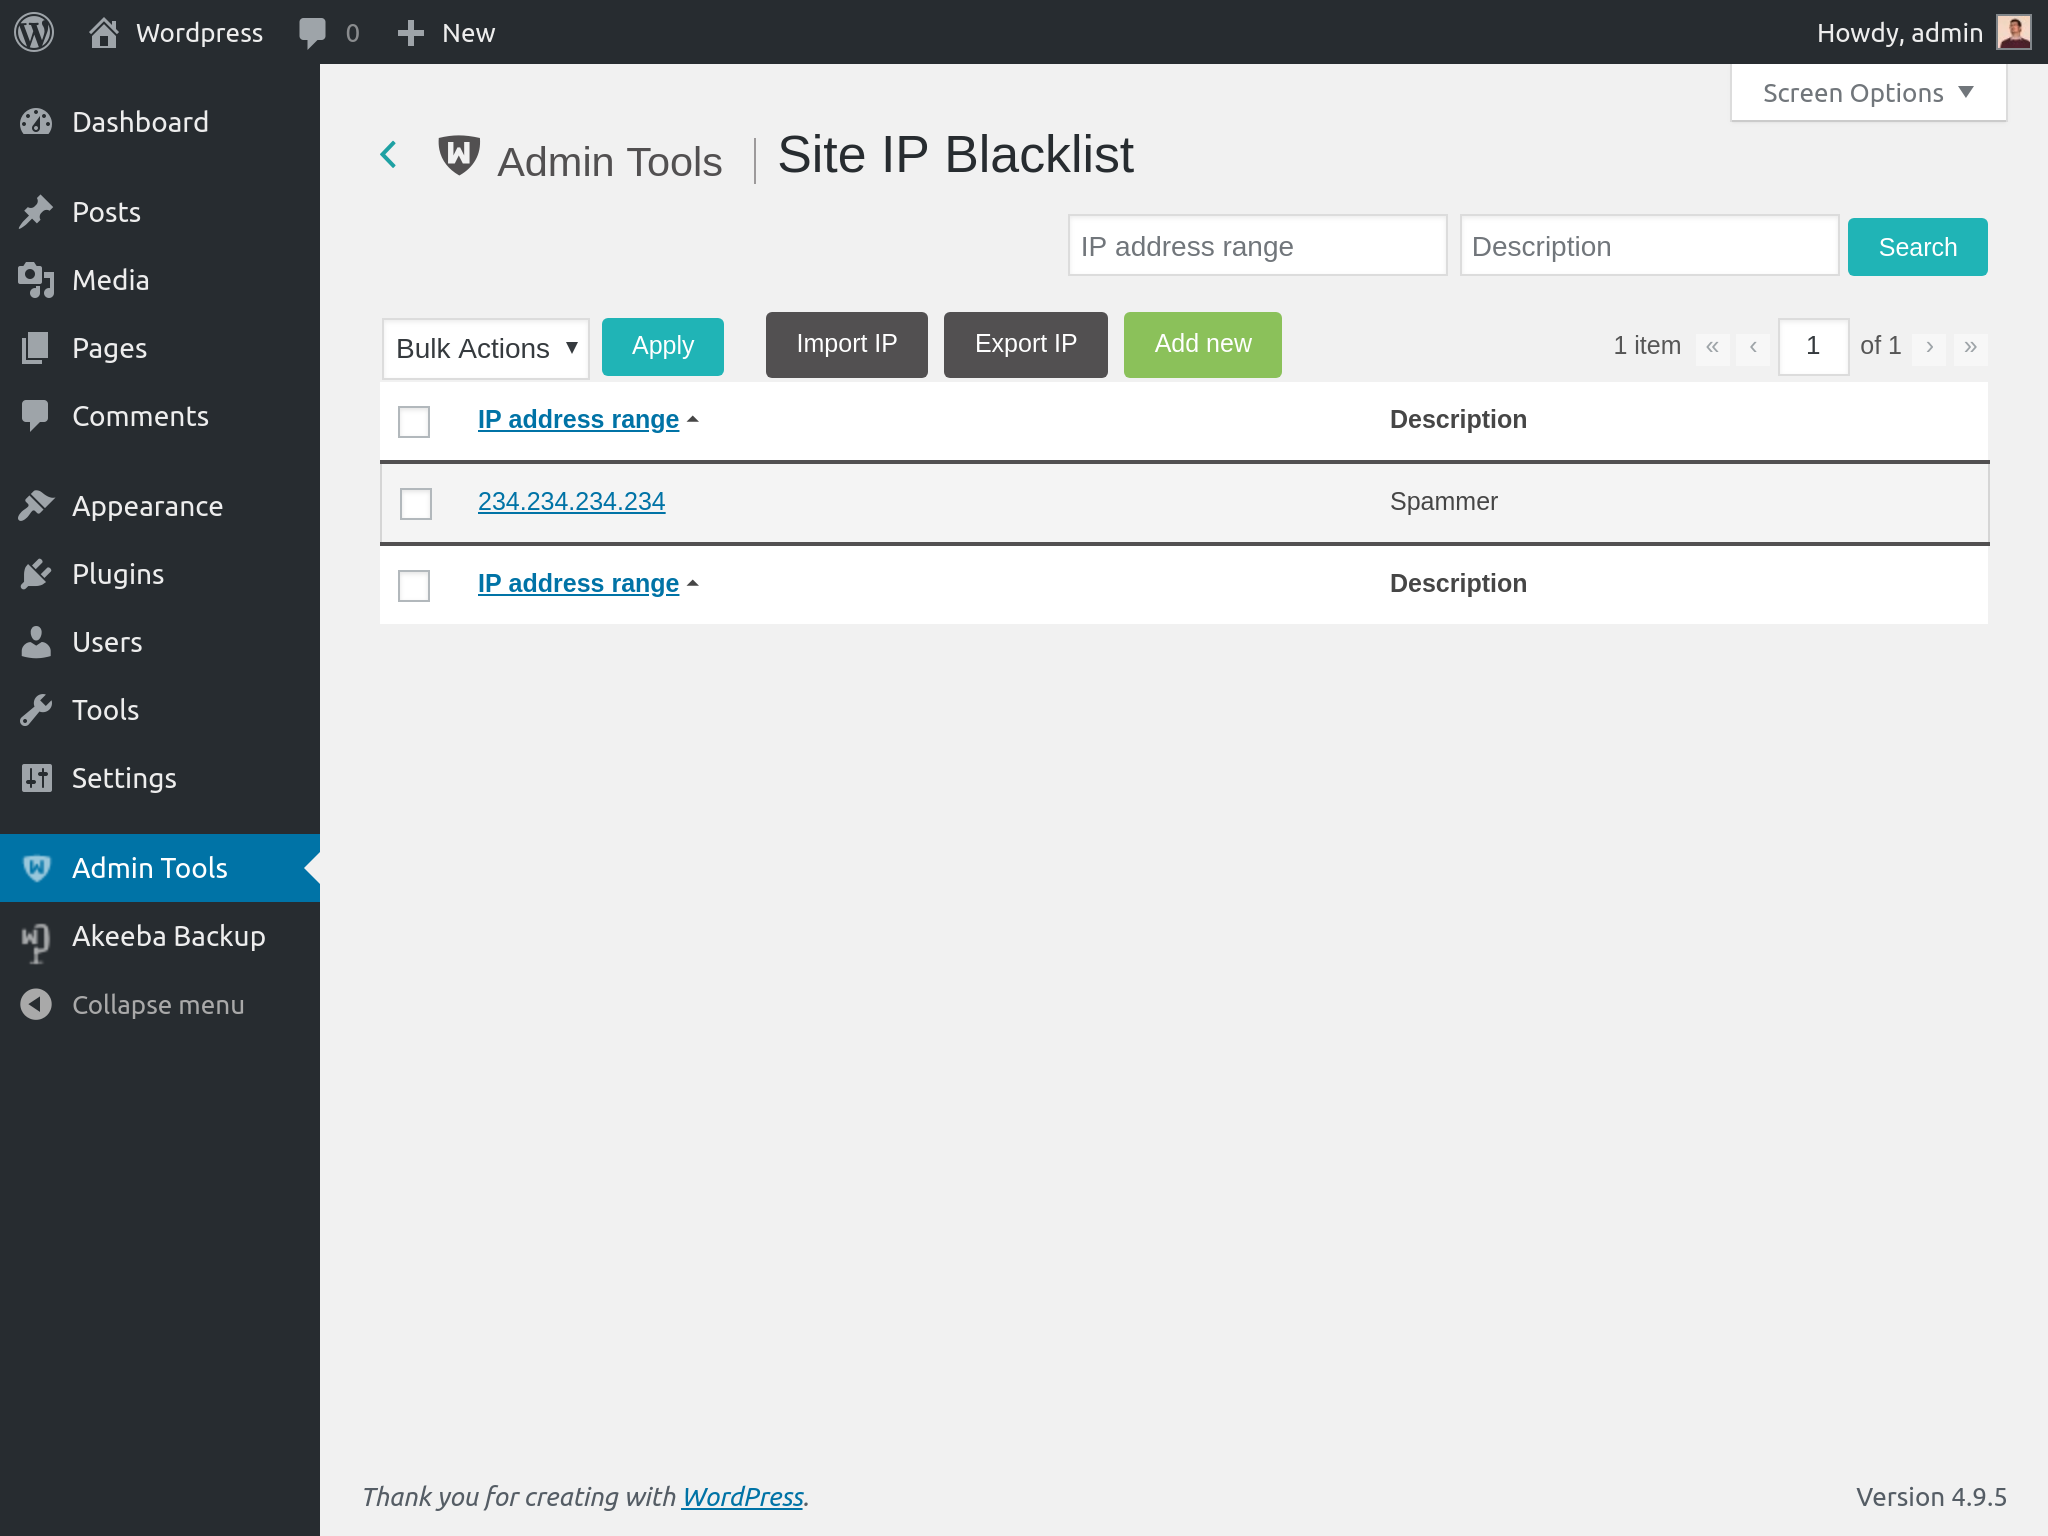 Admin Tools for WordPress :: Site IP Blacklist